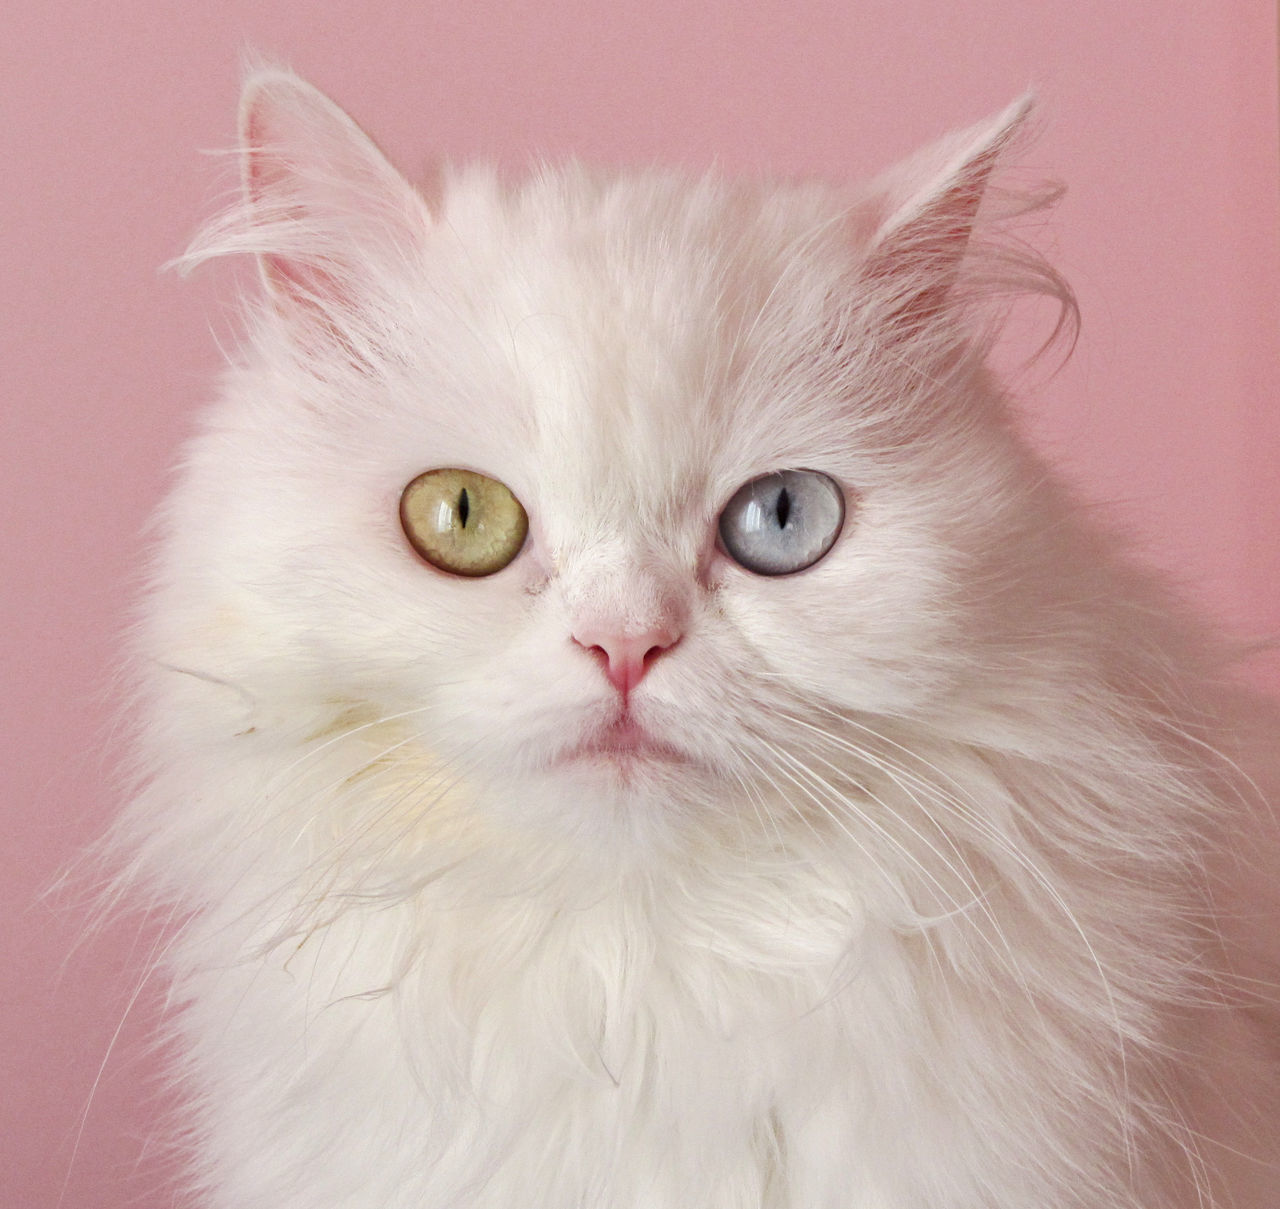 Animal Eye Animal Themes Calm Cat Cats Catsagram Close-up Curiosity Domestic Cat Feline Happy Home Love ♥ One Animal Pets Pink Soft Softness Whisker Market Bestsellers May 2016 Bestsellers